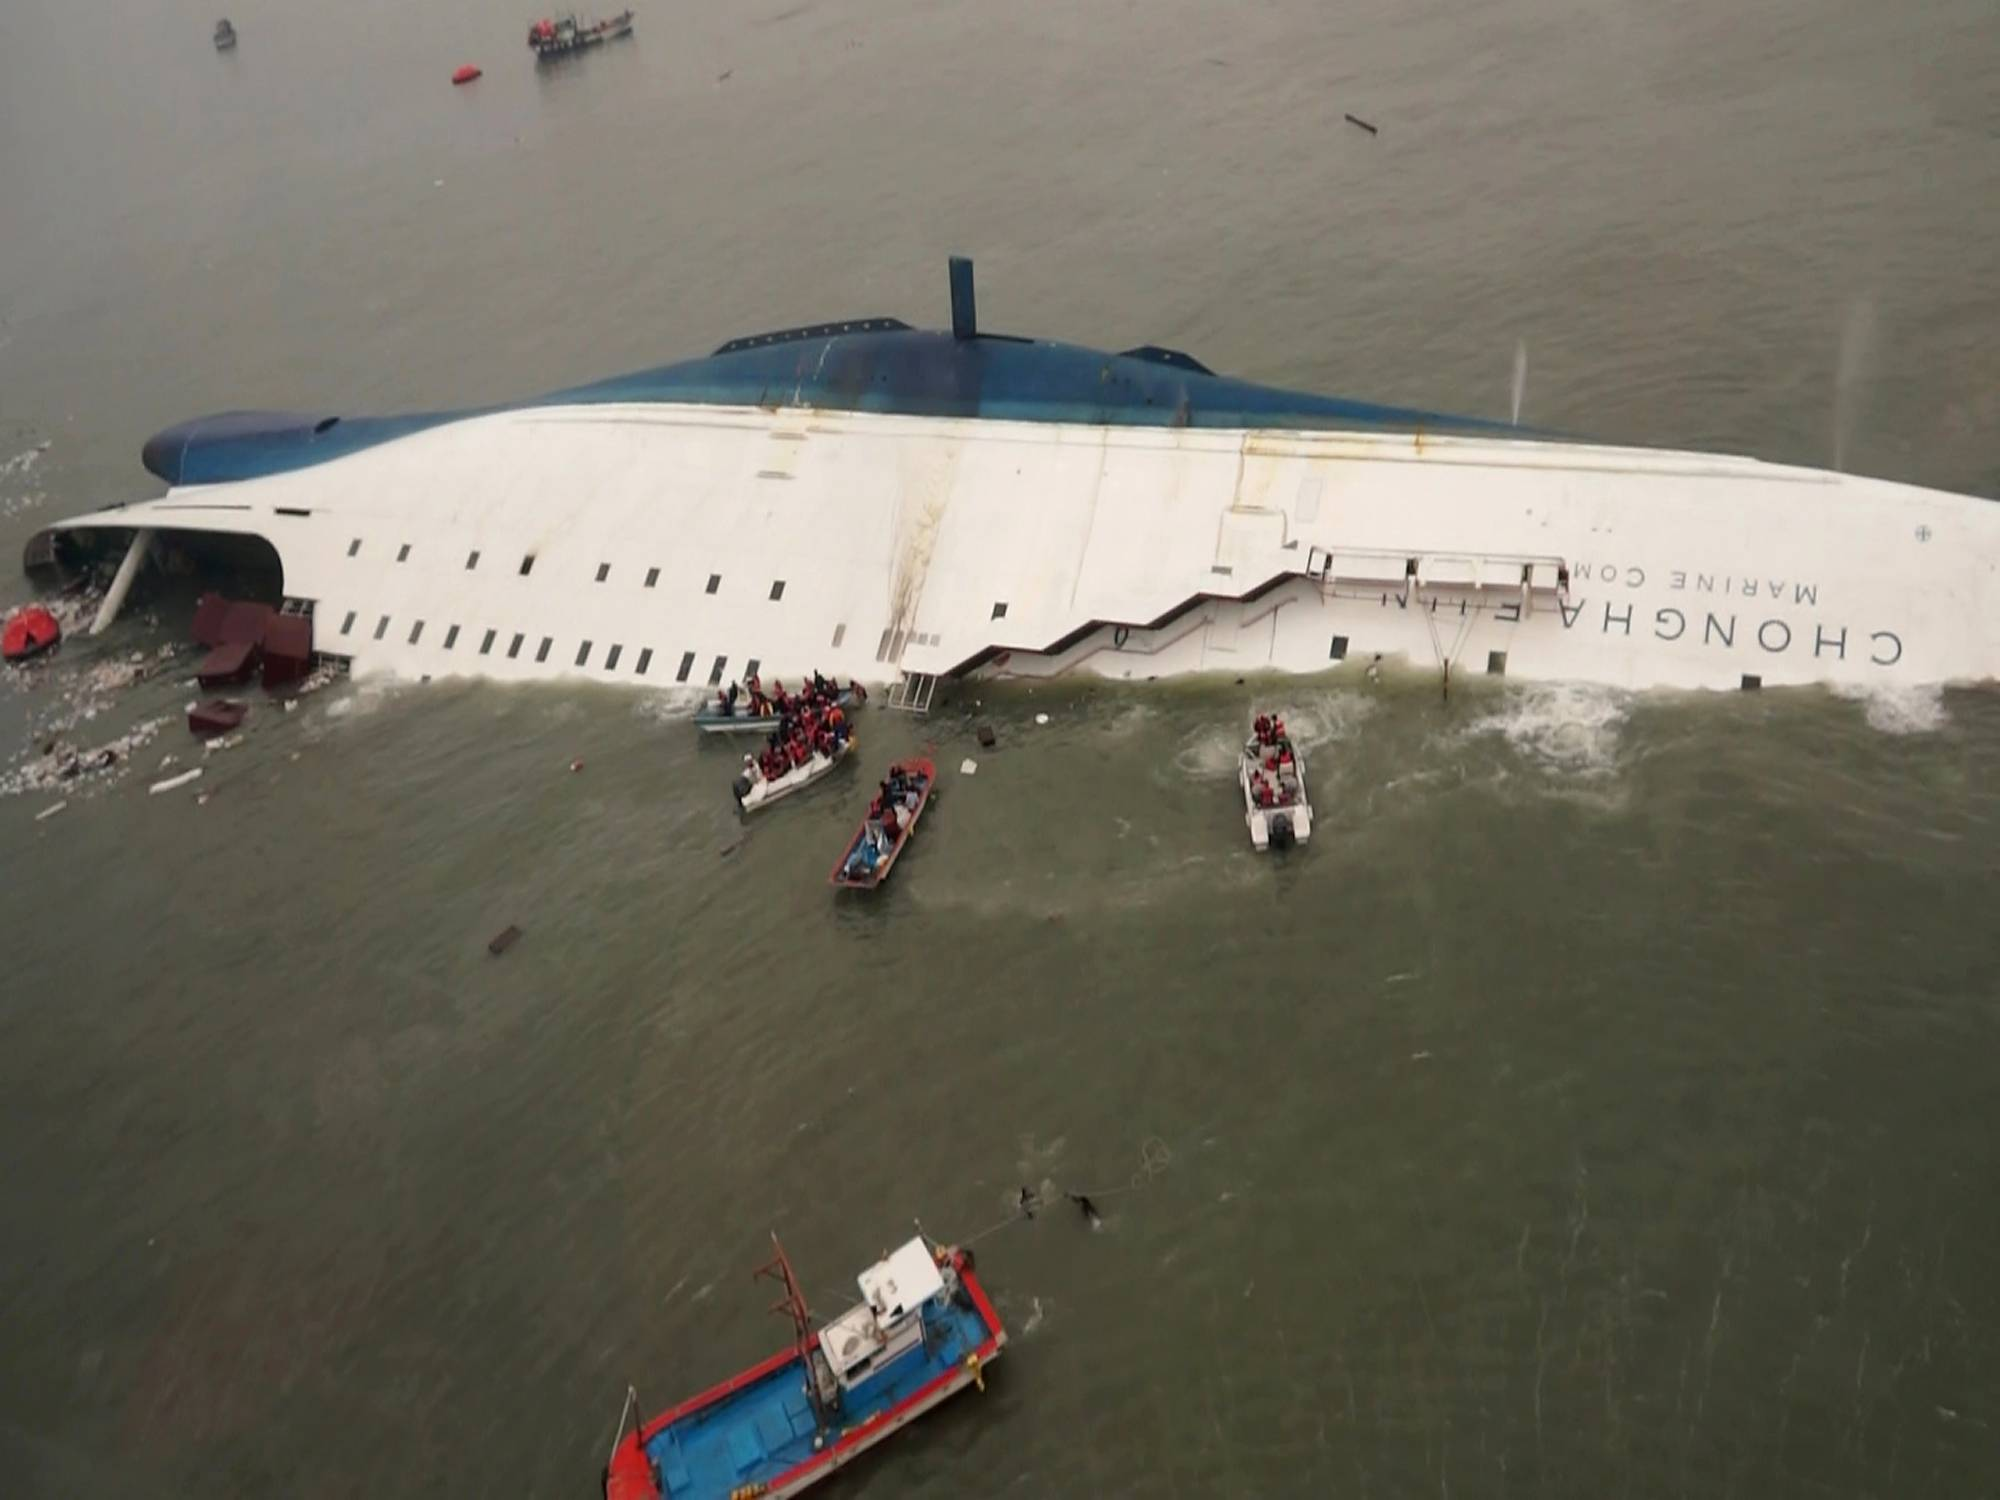 South Korean rescue team boats and fishing boats are seen last week trying to rescue passengers of the sinking Sewol ferry. Maritime experts are asking why passengers were told to stay in their rooms rather than climb on deck.